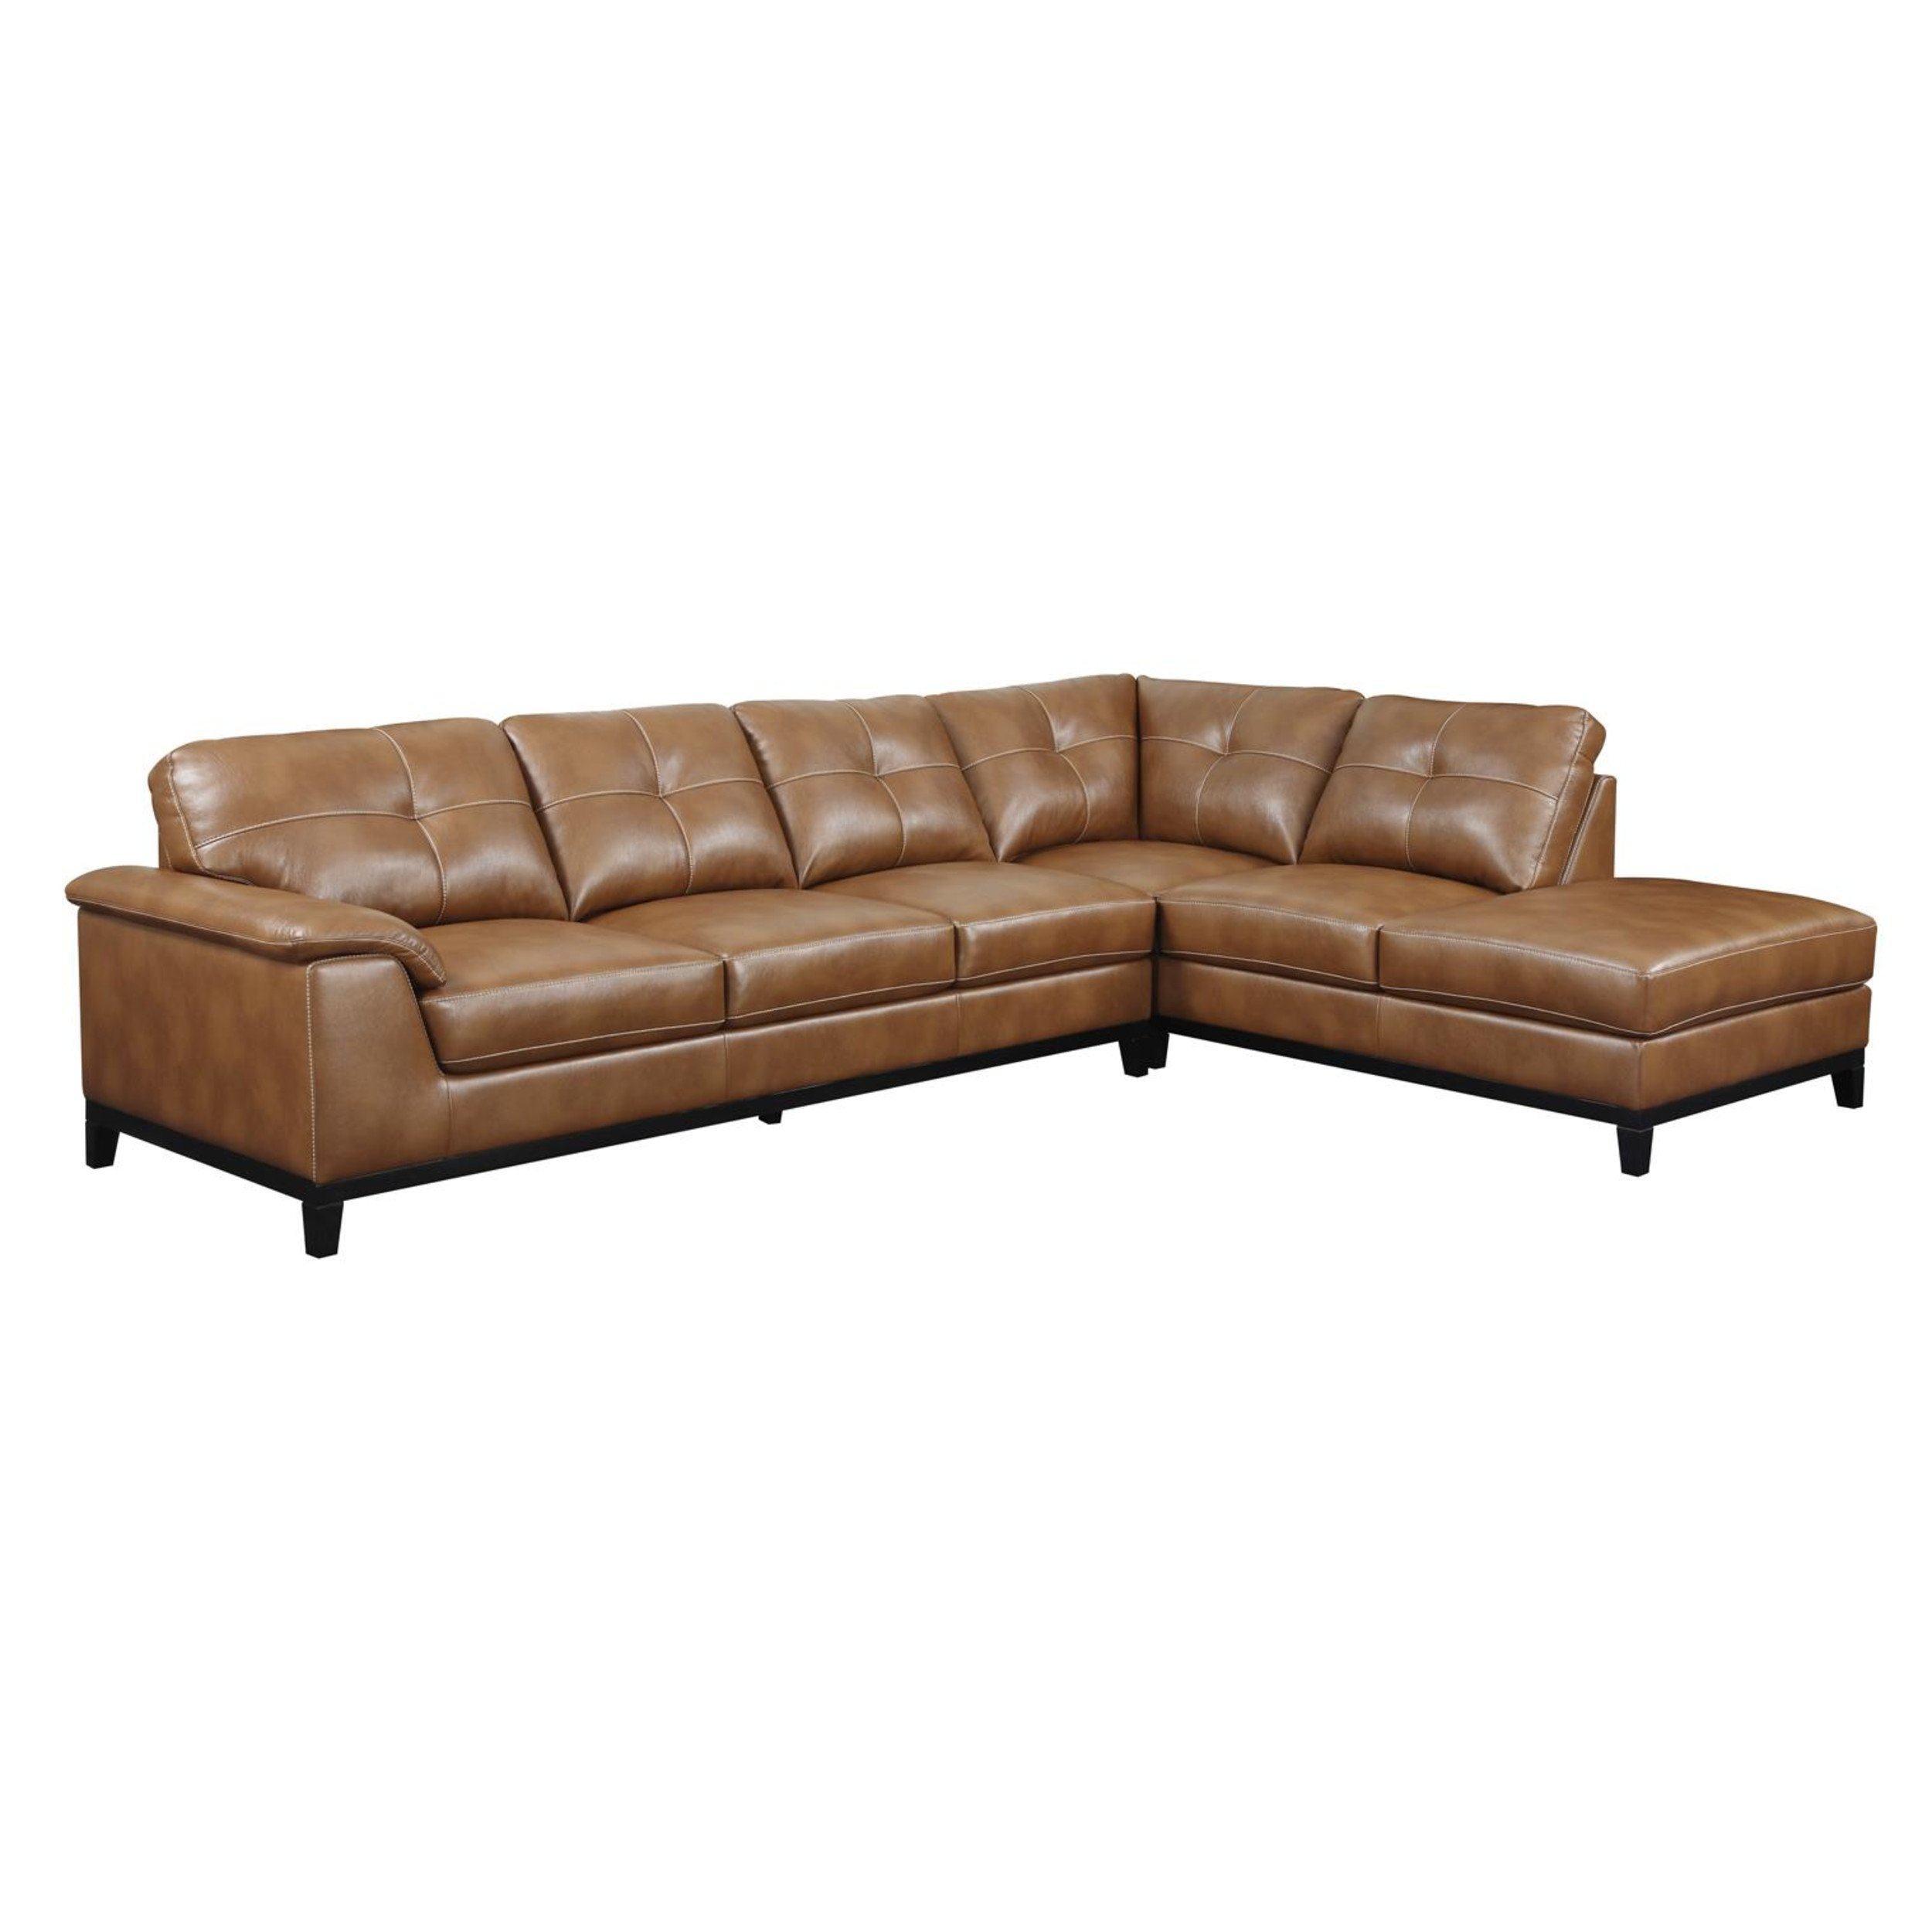 Emerald Home Marquis Chestnut Sectional with Faux Leather Upholstery, Padded Arms, And Contrast Stitching